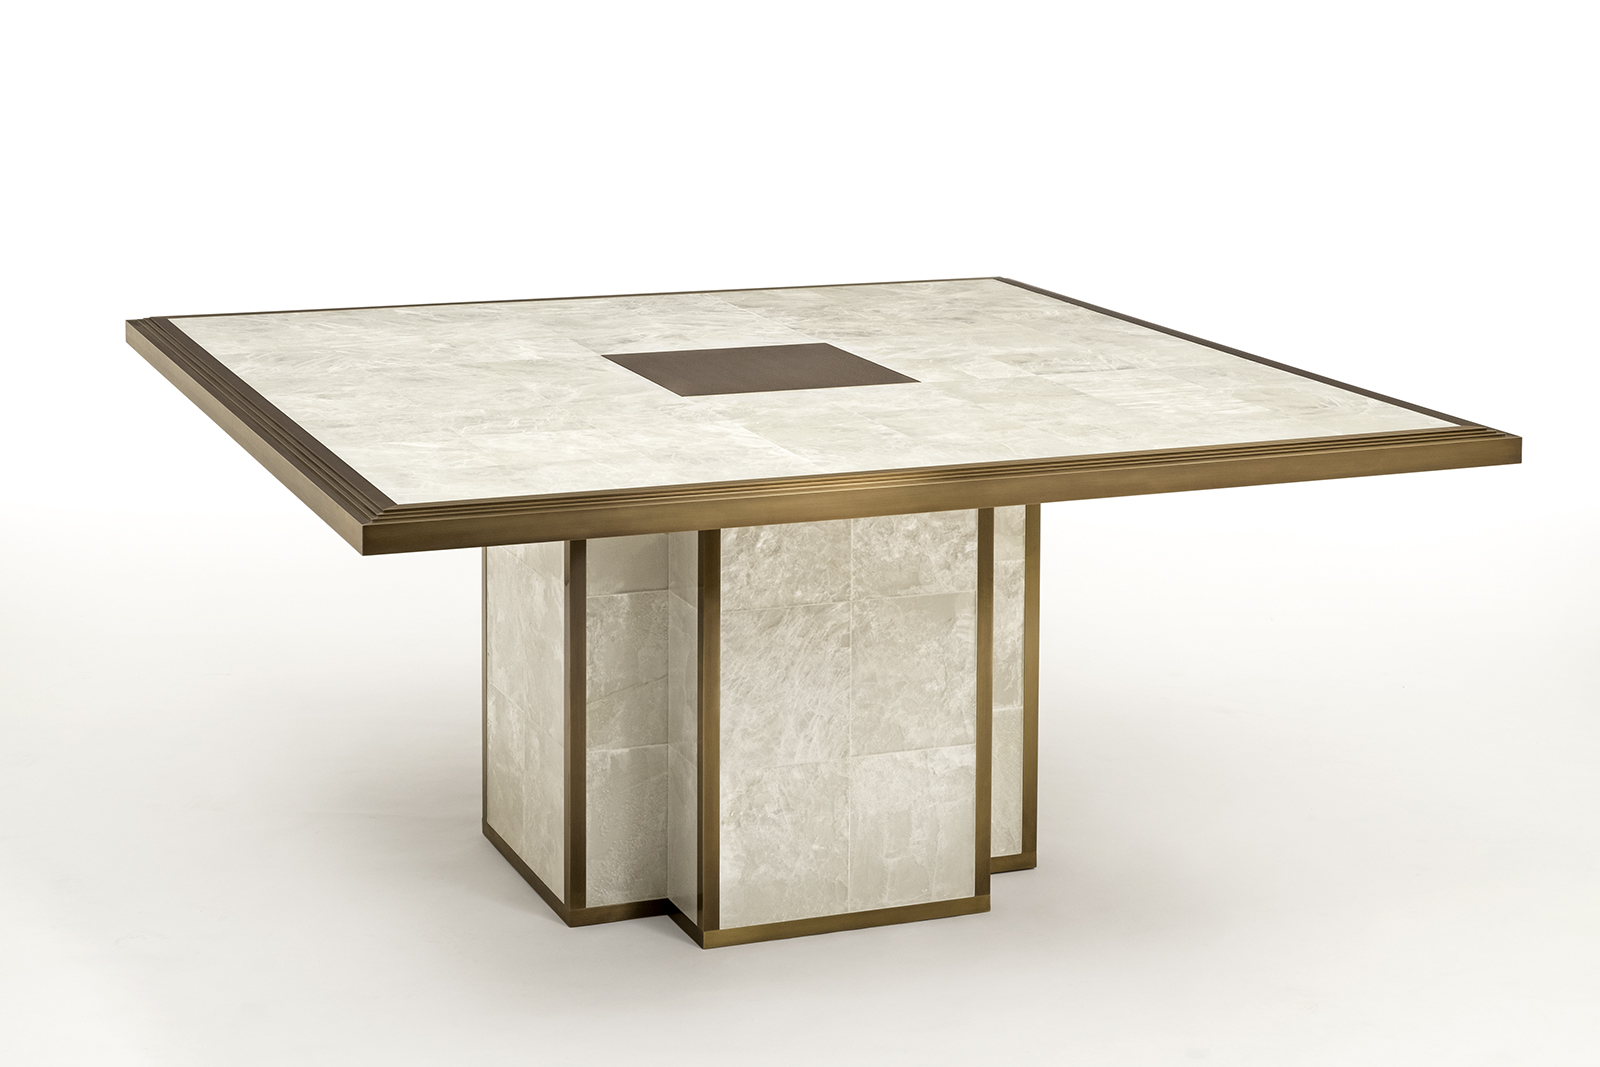 entry table in gypsum & bronze